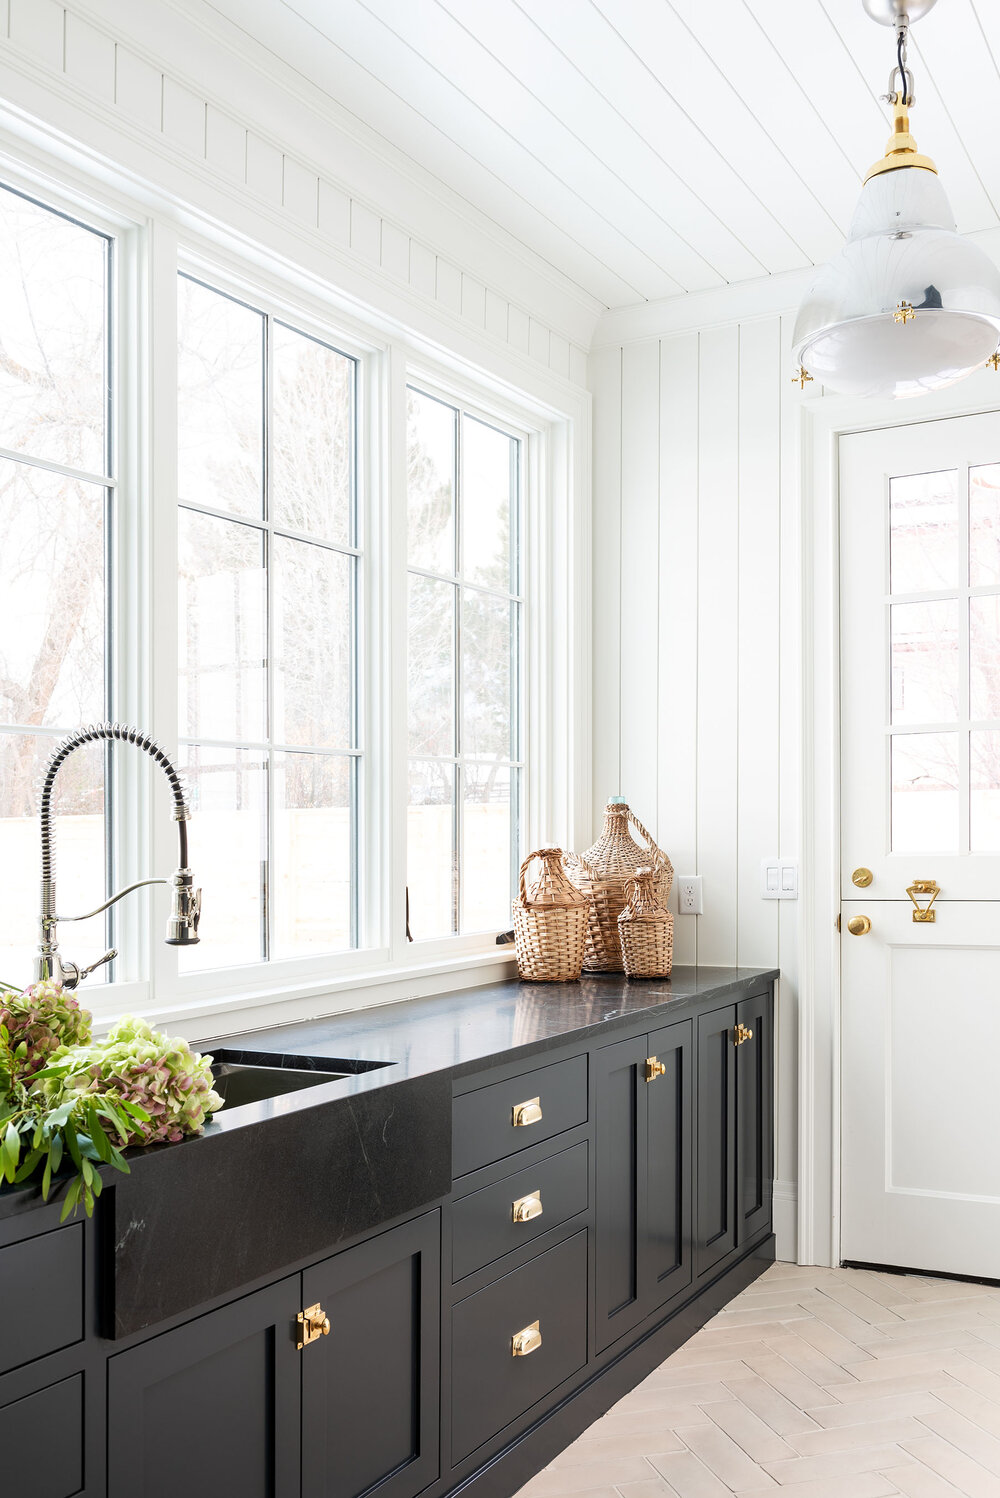 What You Need to Know About Custom Cabinetry